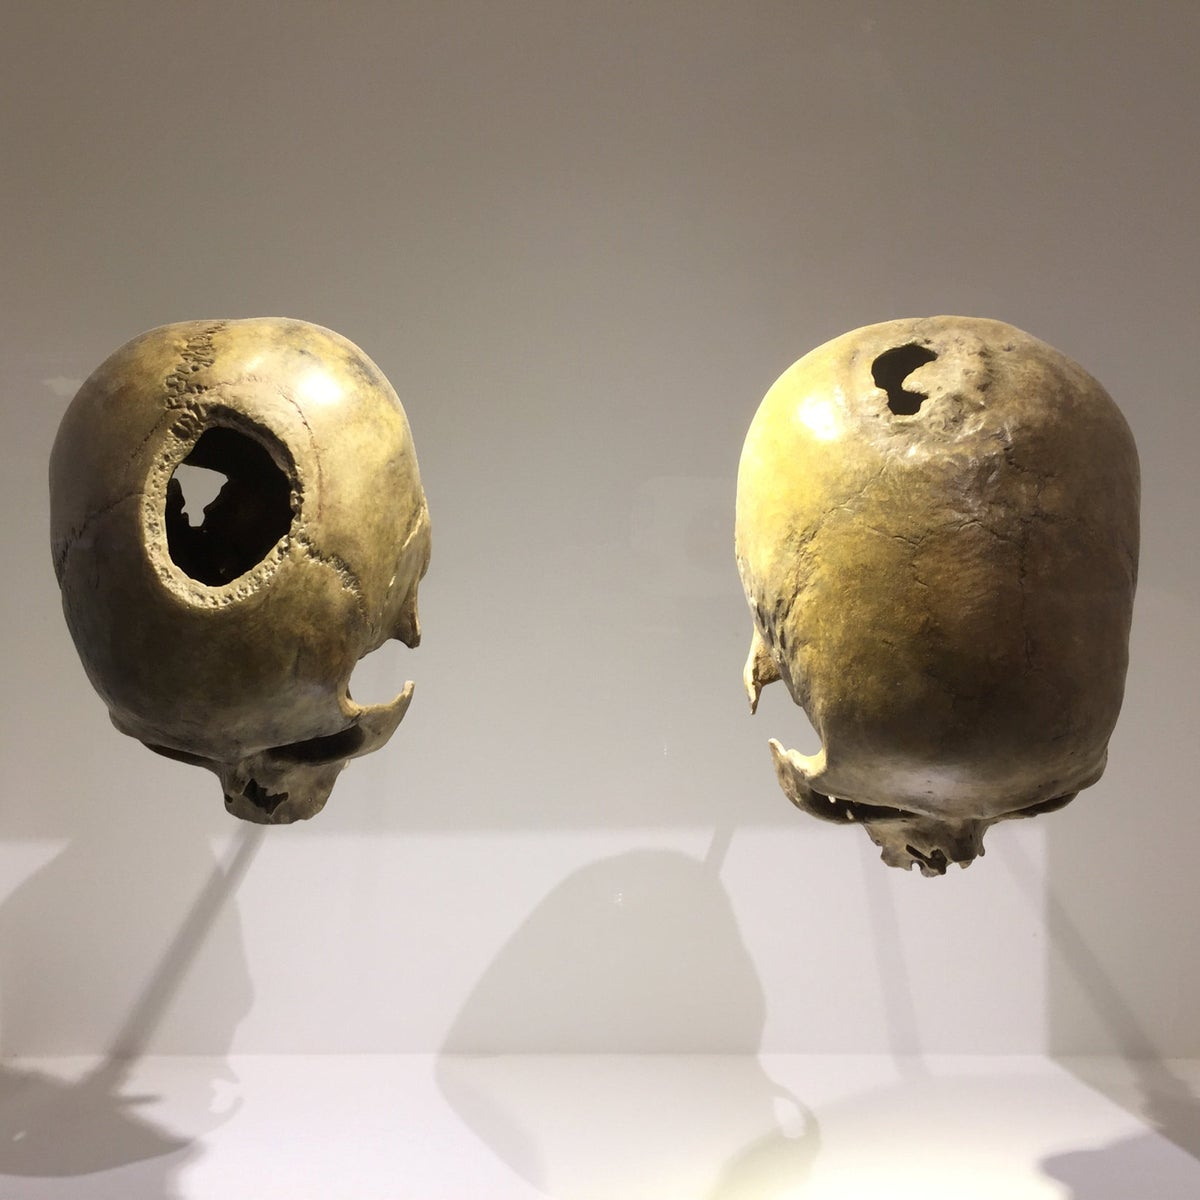 Two 6,000-year-old trephinated skulls from the Judean desert. Bone regrowth showed the individual on the right survived the procedure. The one on the left did not.